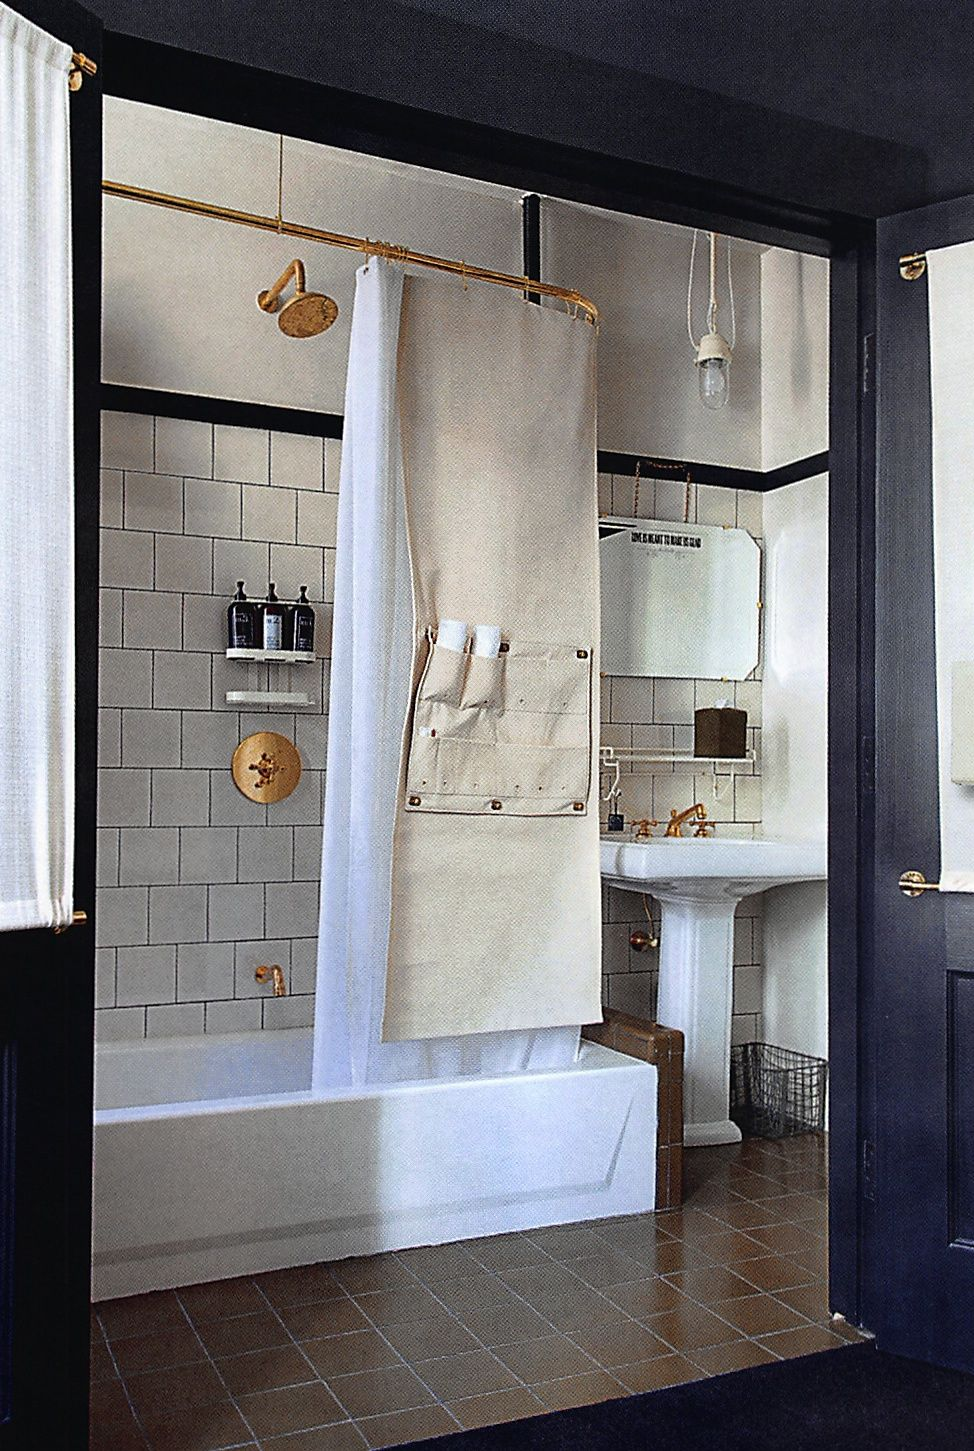 Copper Fittings At Ace Hotel New York Bathroom Pinterest